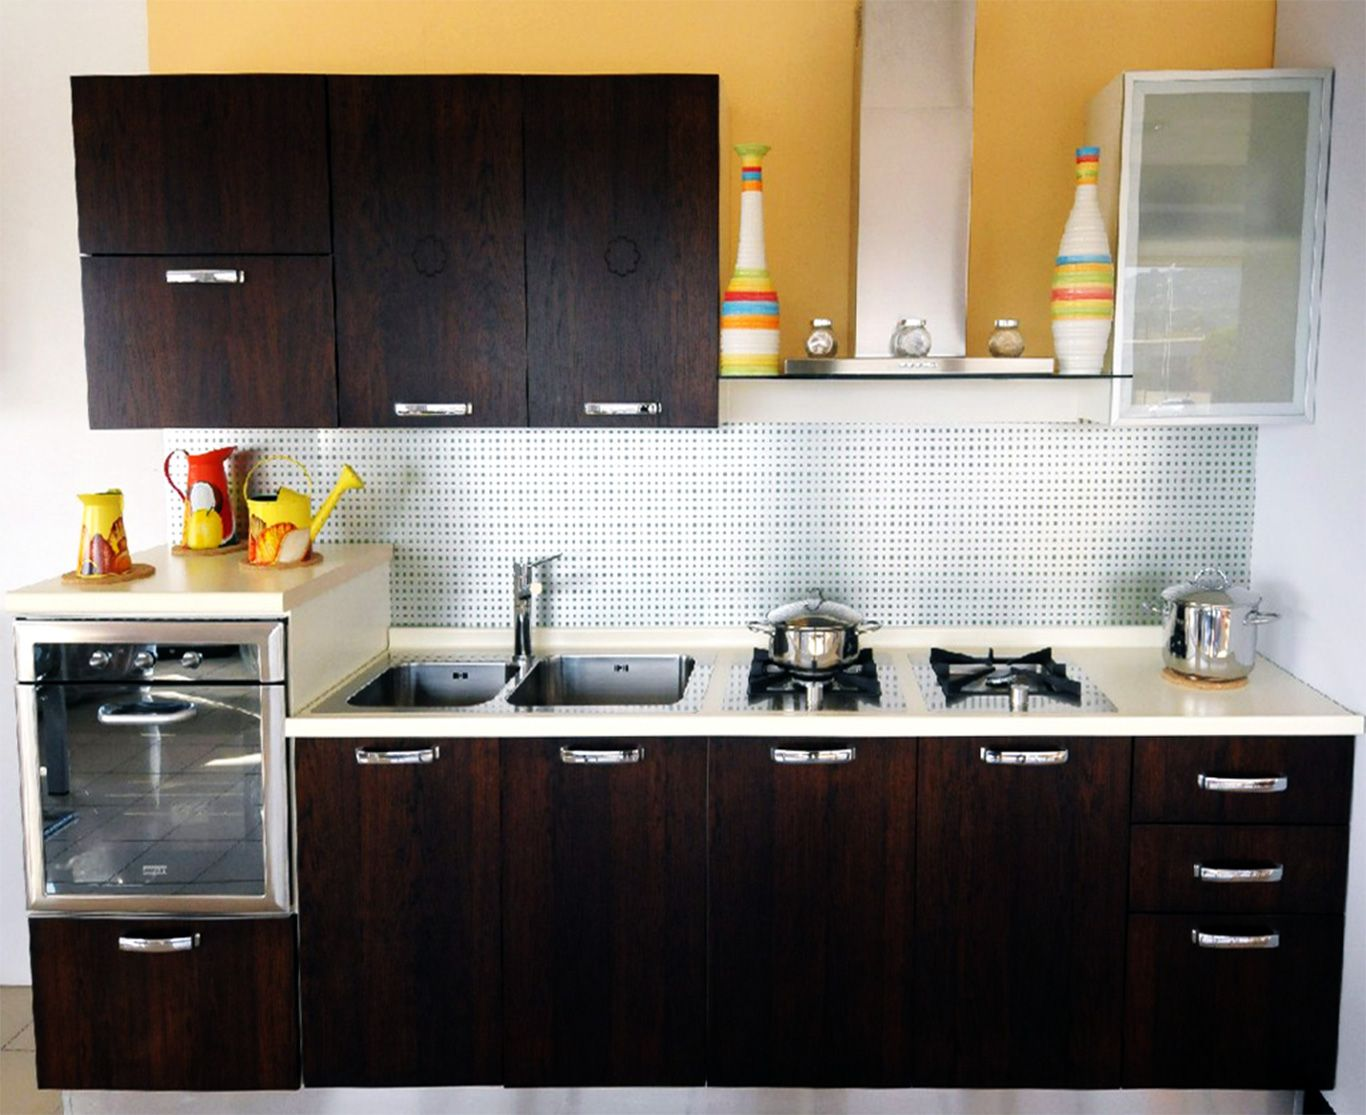 Pune kitchens is the modular kitchen shutters supplier for Kitchen design companies